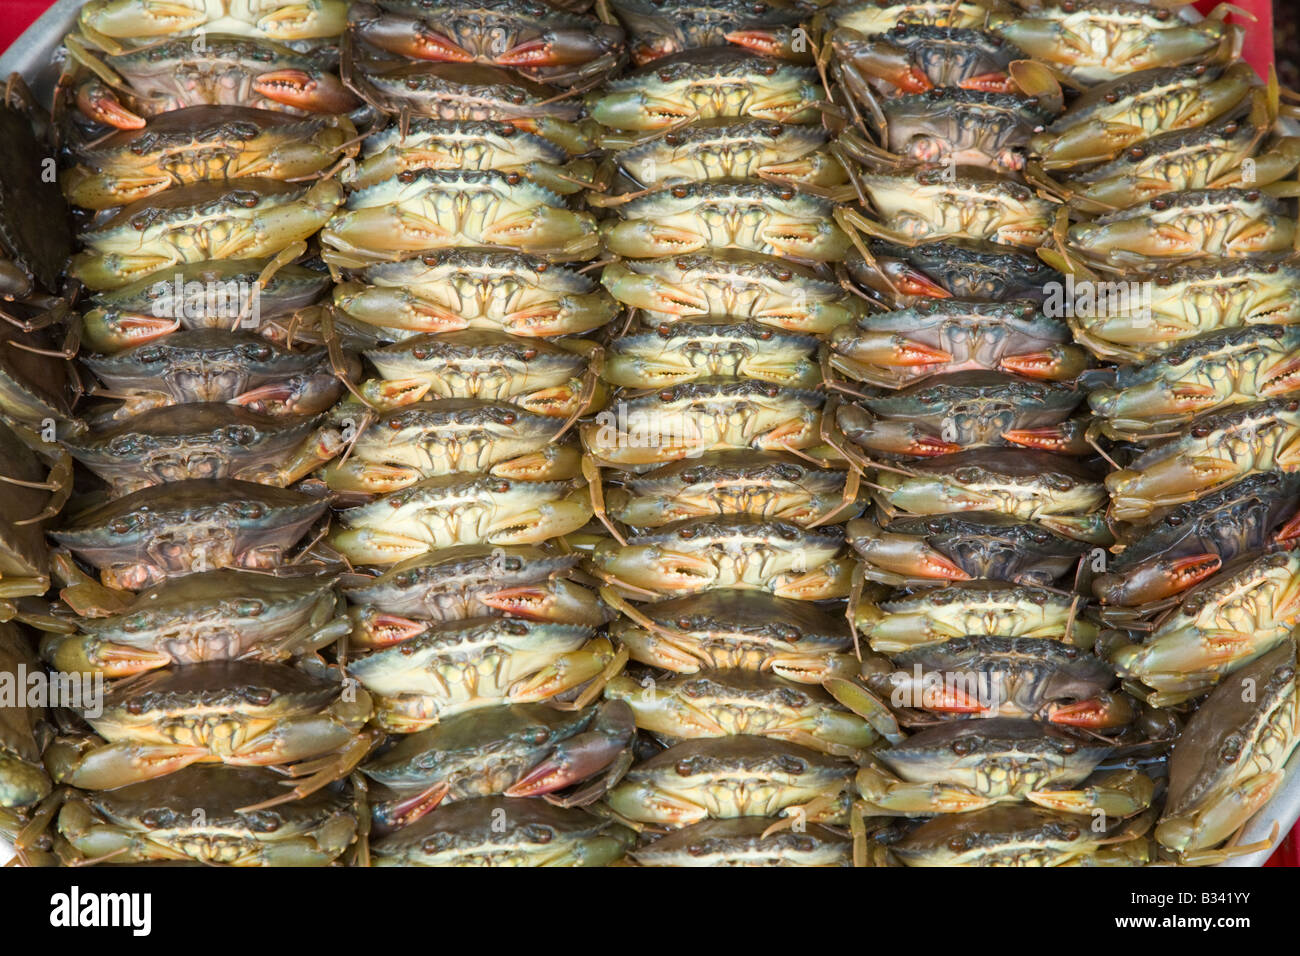 Live crabs tied up at a Vietnamese market - Stock Image